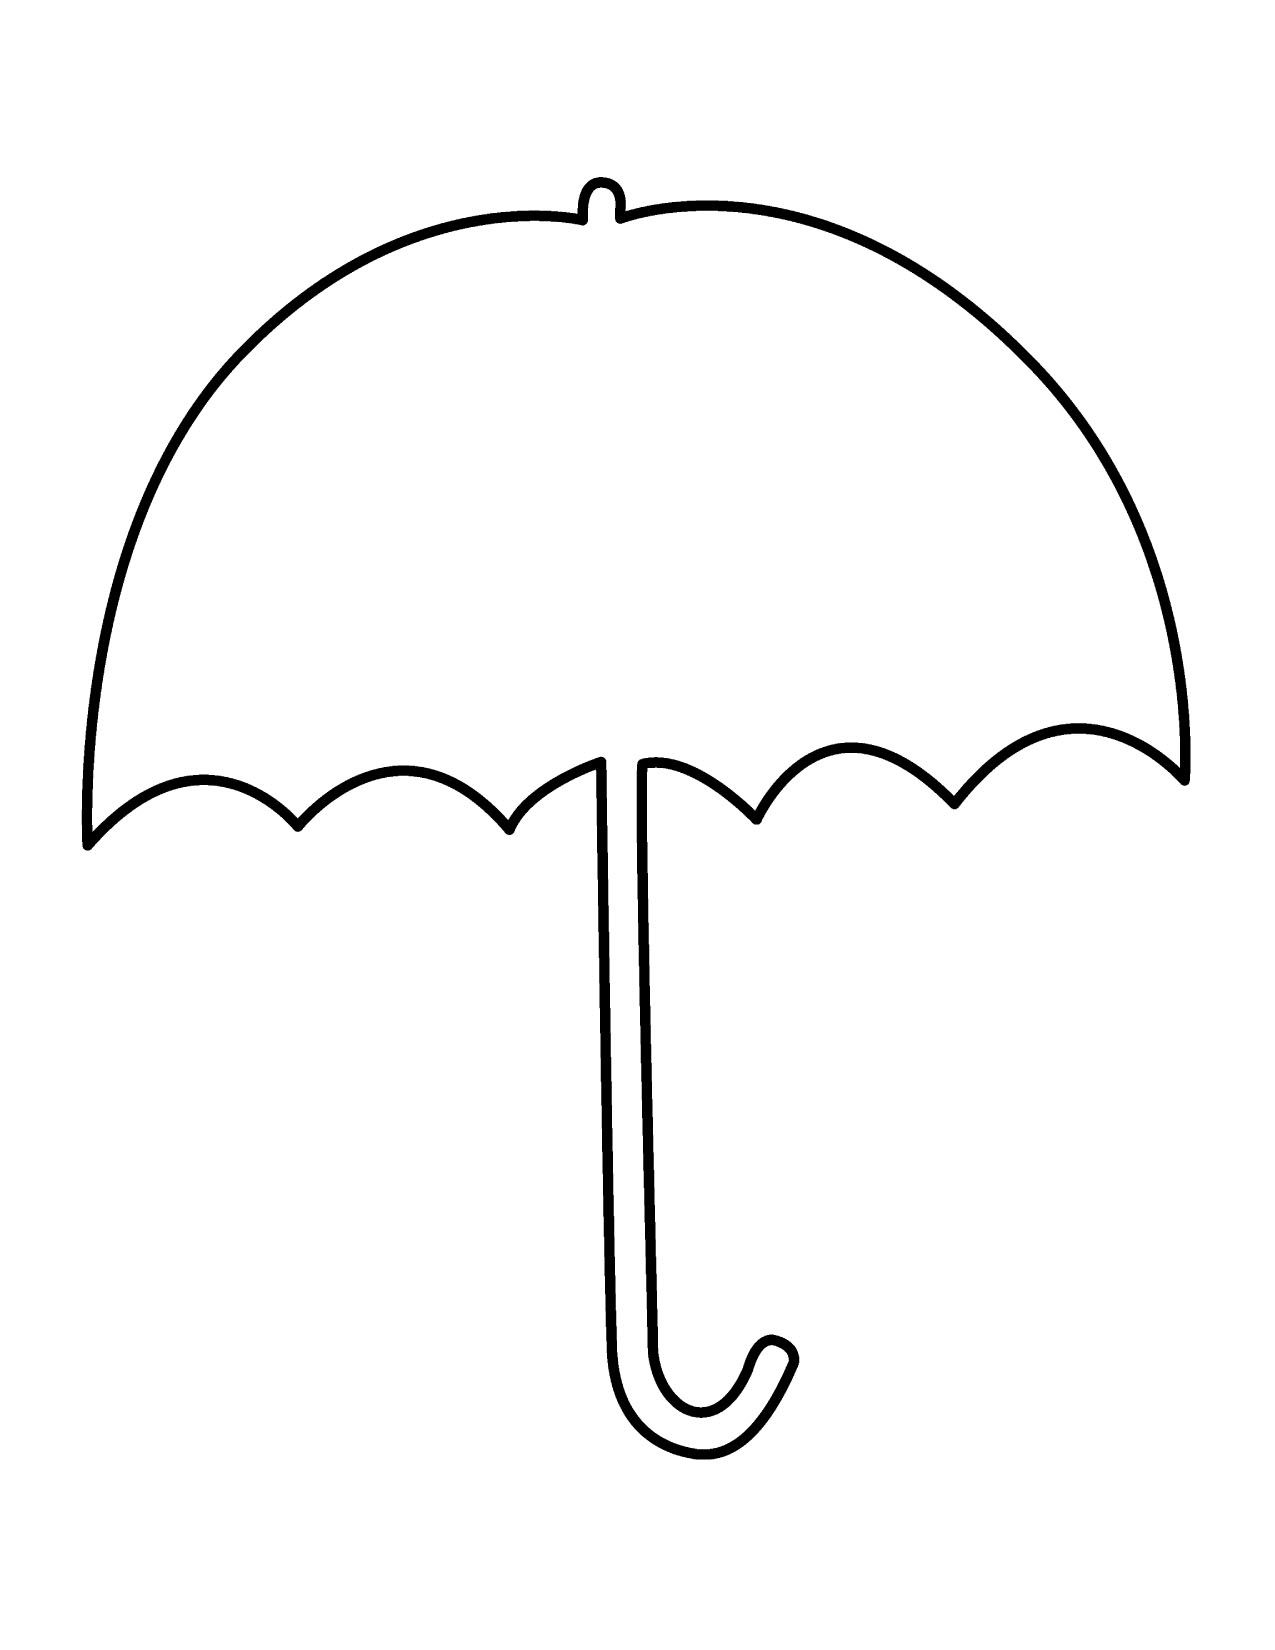 umbrella clip art outline clipart panda free clipart images art rh pinterest com clip art umbrella free clip art umbrella rain